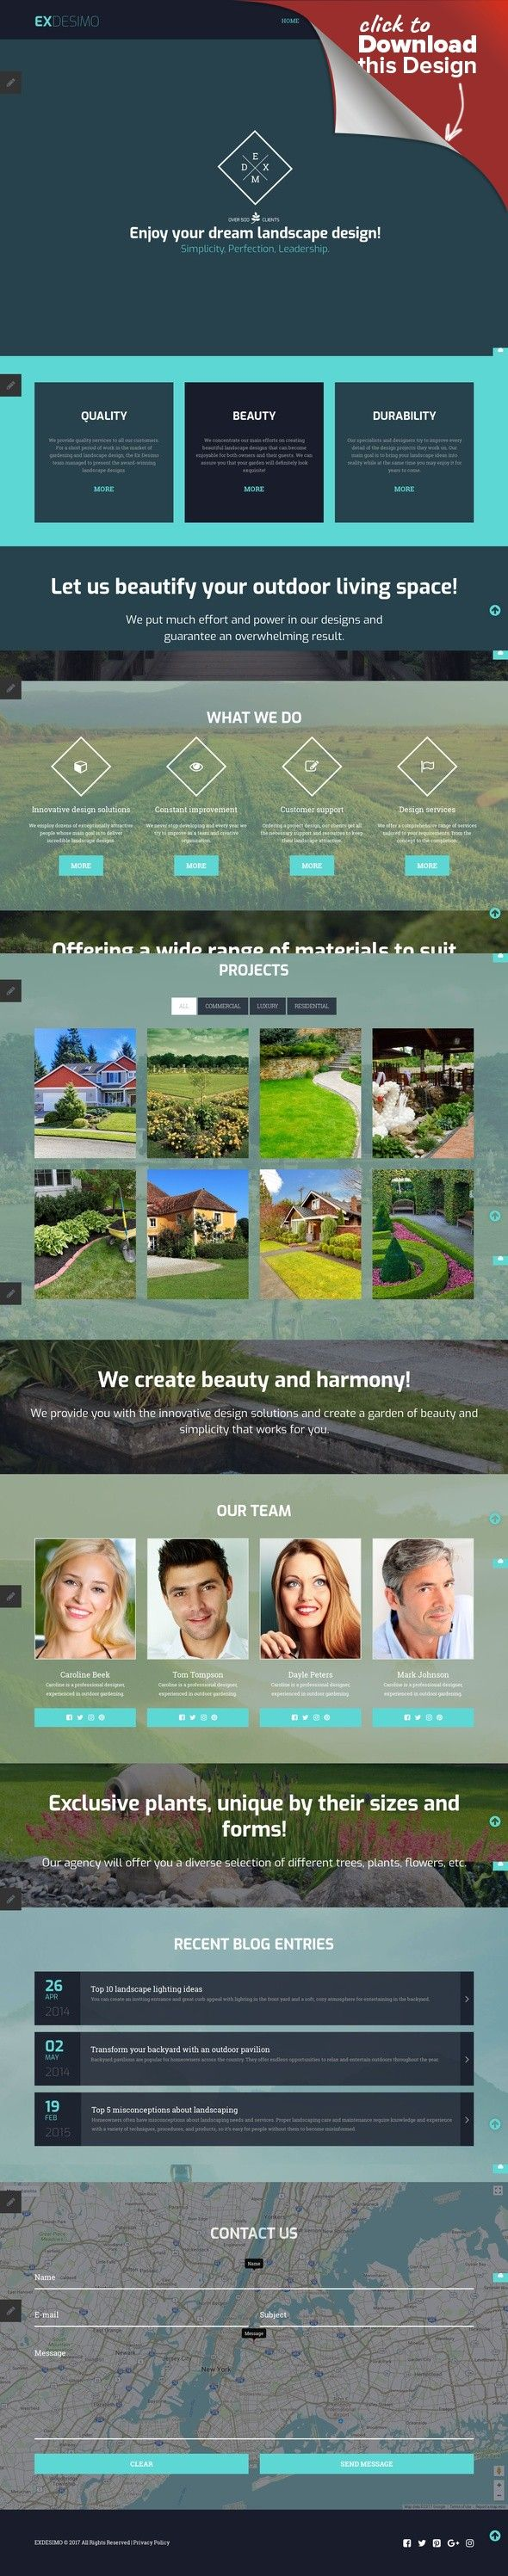 Landscape Design Responsive Joomla Template CMS & Blog Templates, Joomla Templates, Design & Photography, Design, Exterior Design Templates, Landscape Design Templates Landscape Design Responsive Joomla Template. Additional features, comprehensive documentation and stock photos are included.